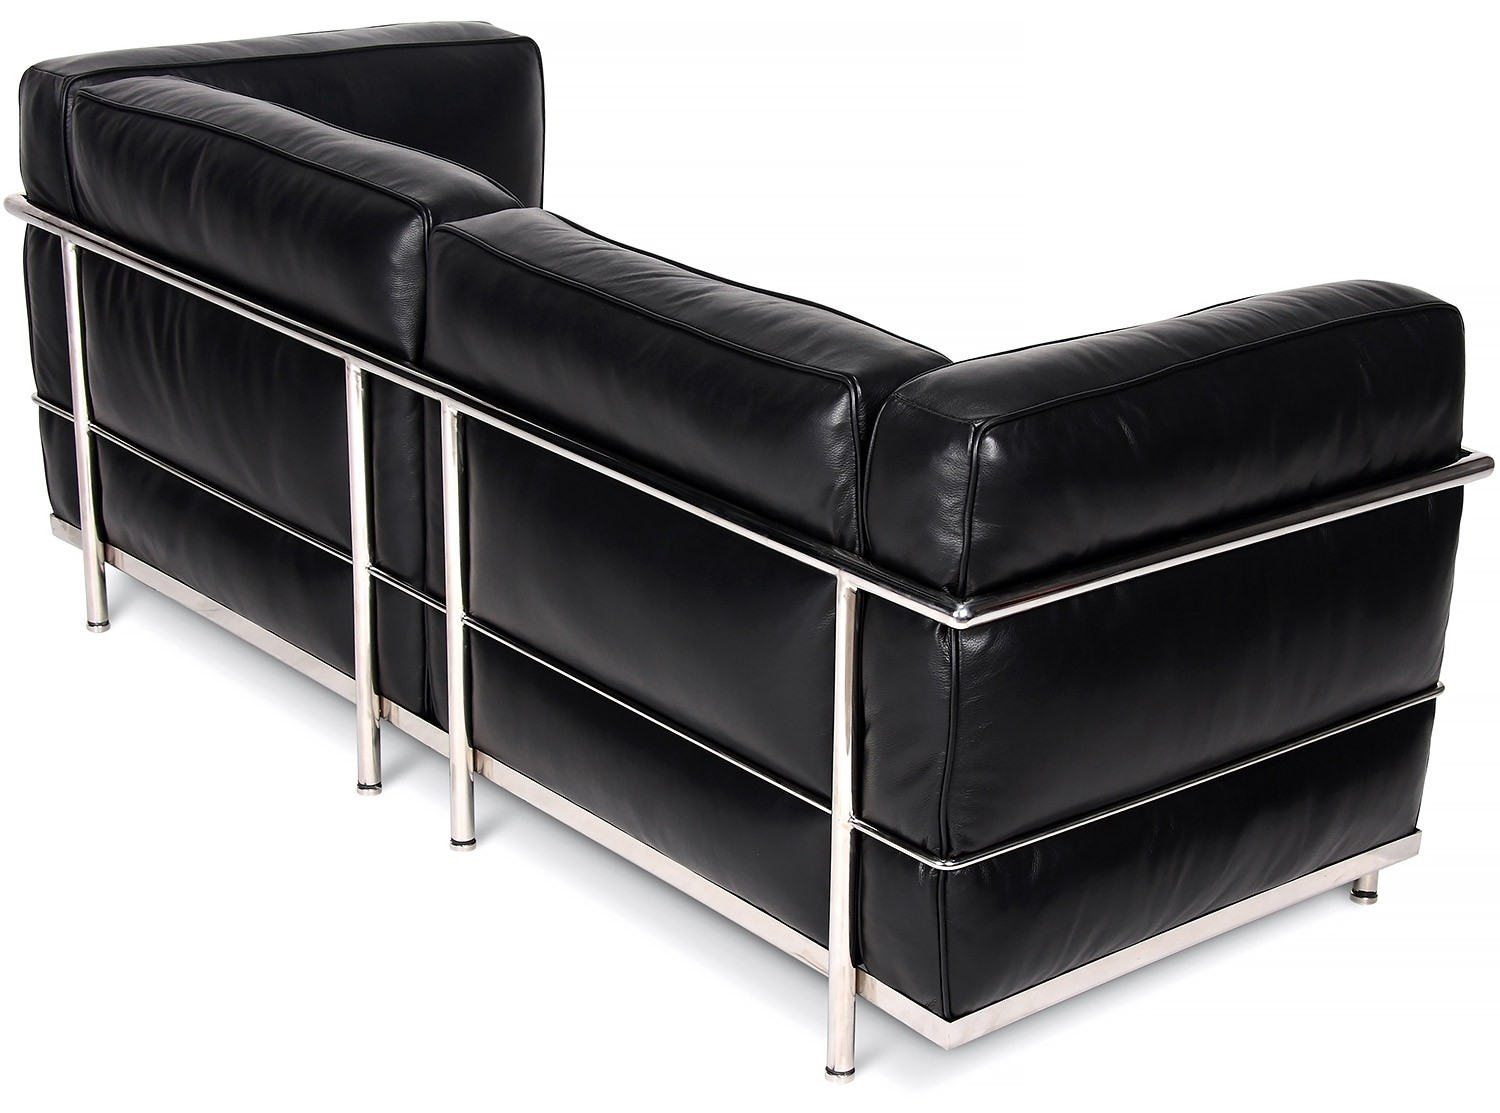 Le corbusier lc3 sofa 2 seater grand confort collector for Le corbusier replica